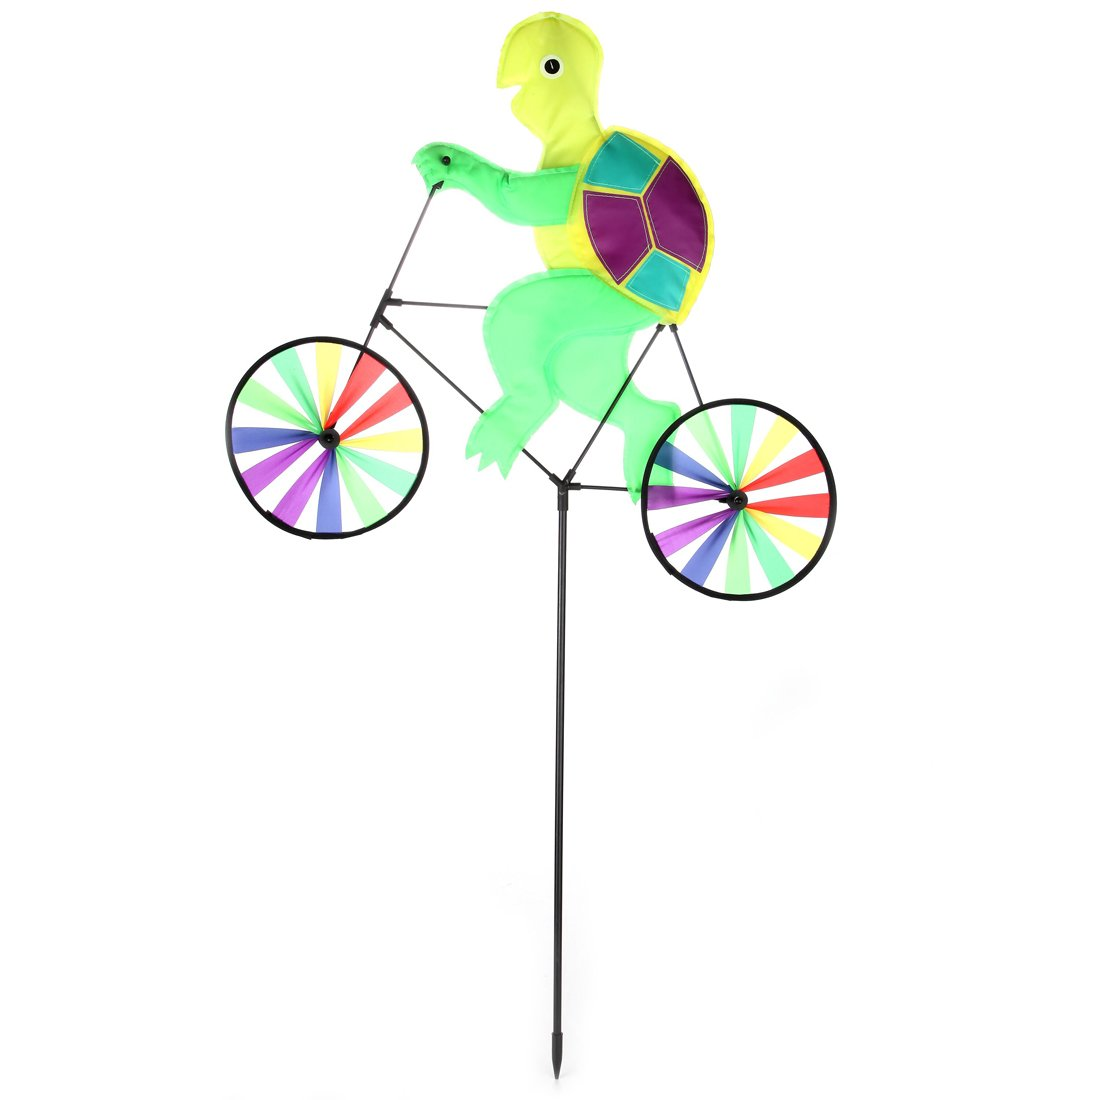 Home-X Garden Wind Spinners - Bicycle Frog and Turtle (Turtle)